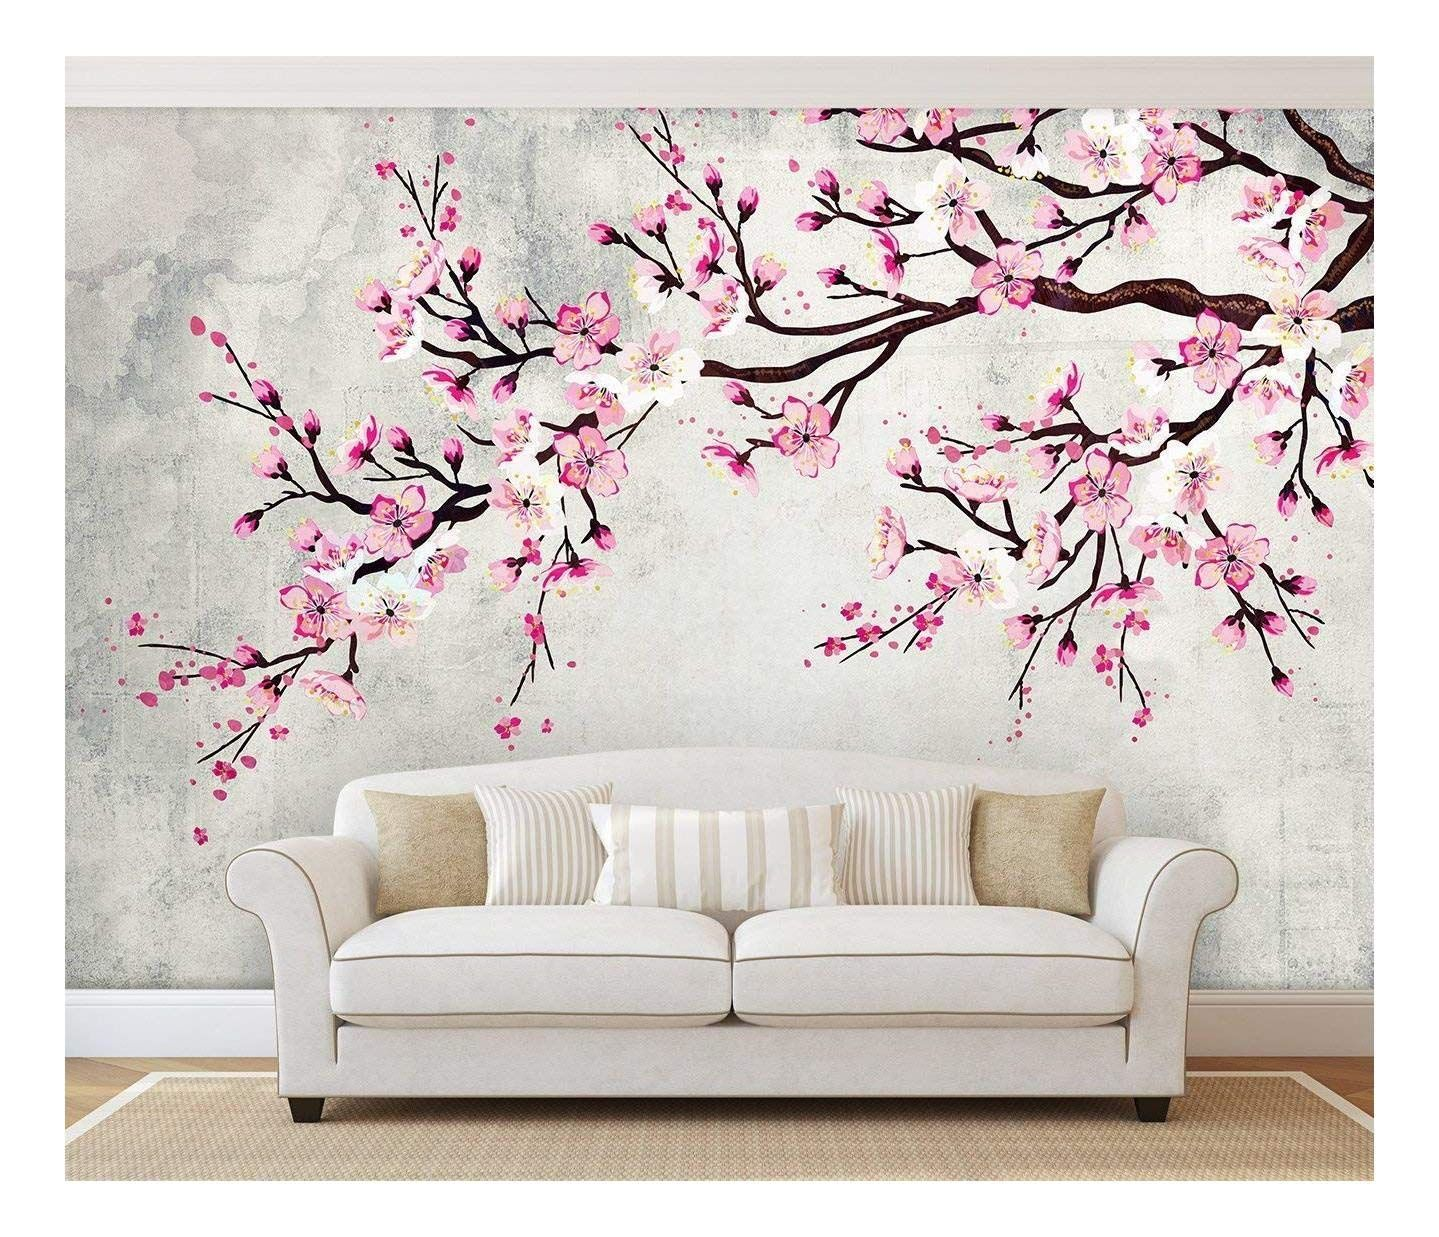 wall26 Large Wall Mural - Watercolor Style Ink Painting Pink Cherry Blossom on Vintage Wall Background   Self-adhesive Vinyl Wallpaper/Removable Modern Wall Decor - 66x96 inches - Walmart.com